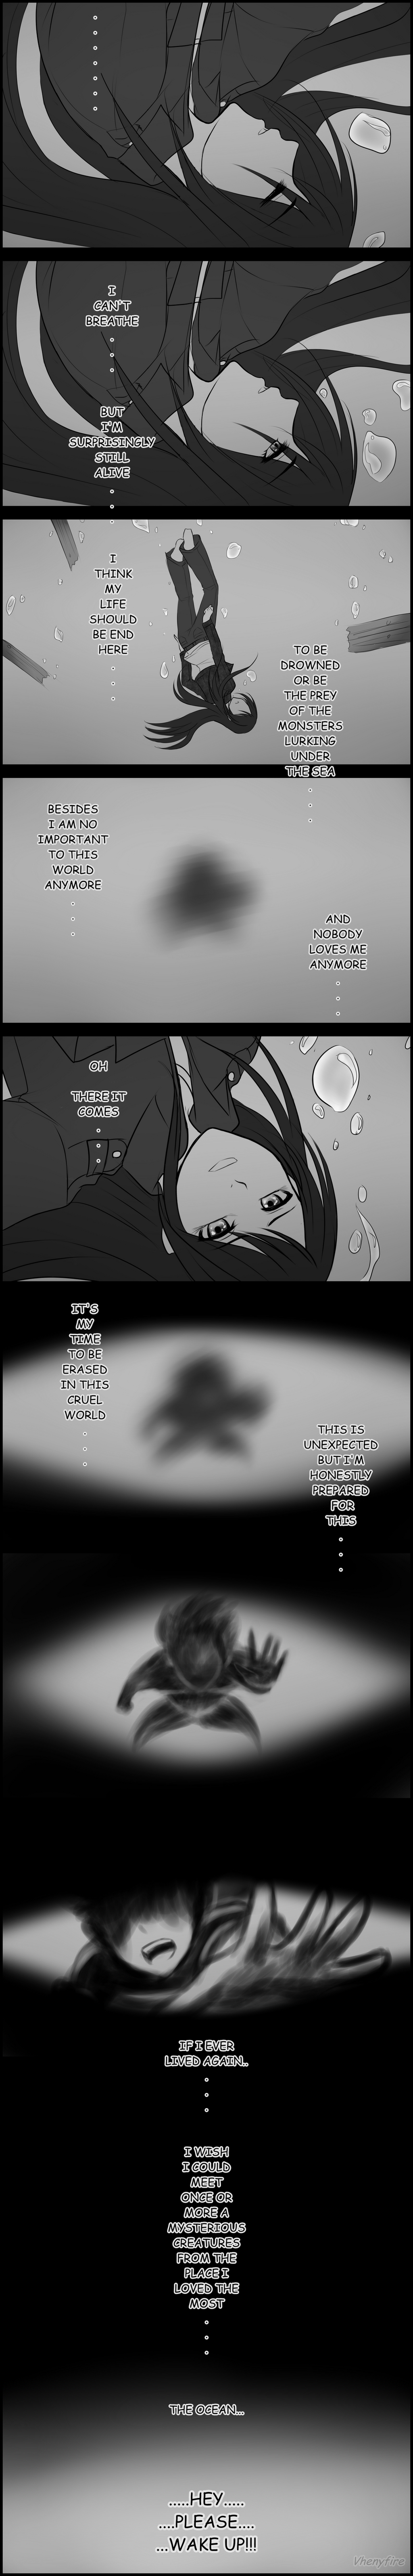 SNK/AOT - AQUATIC!AU DOUJIN (Prologue) by Vhenyfire